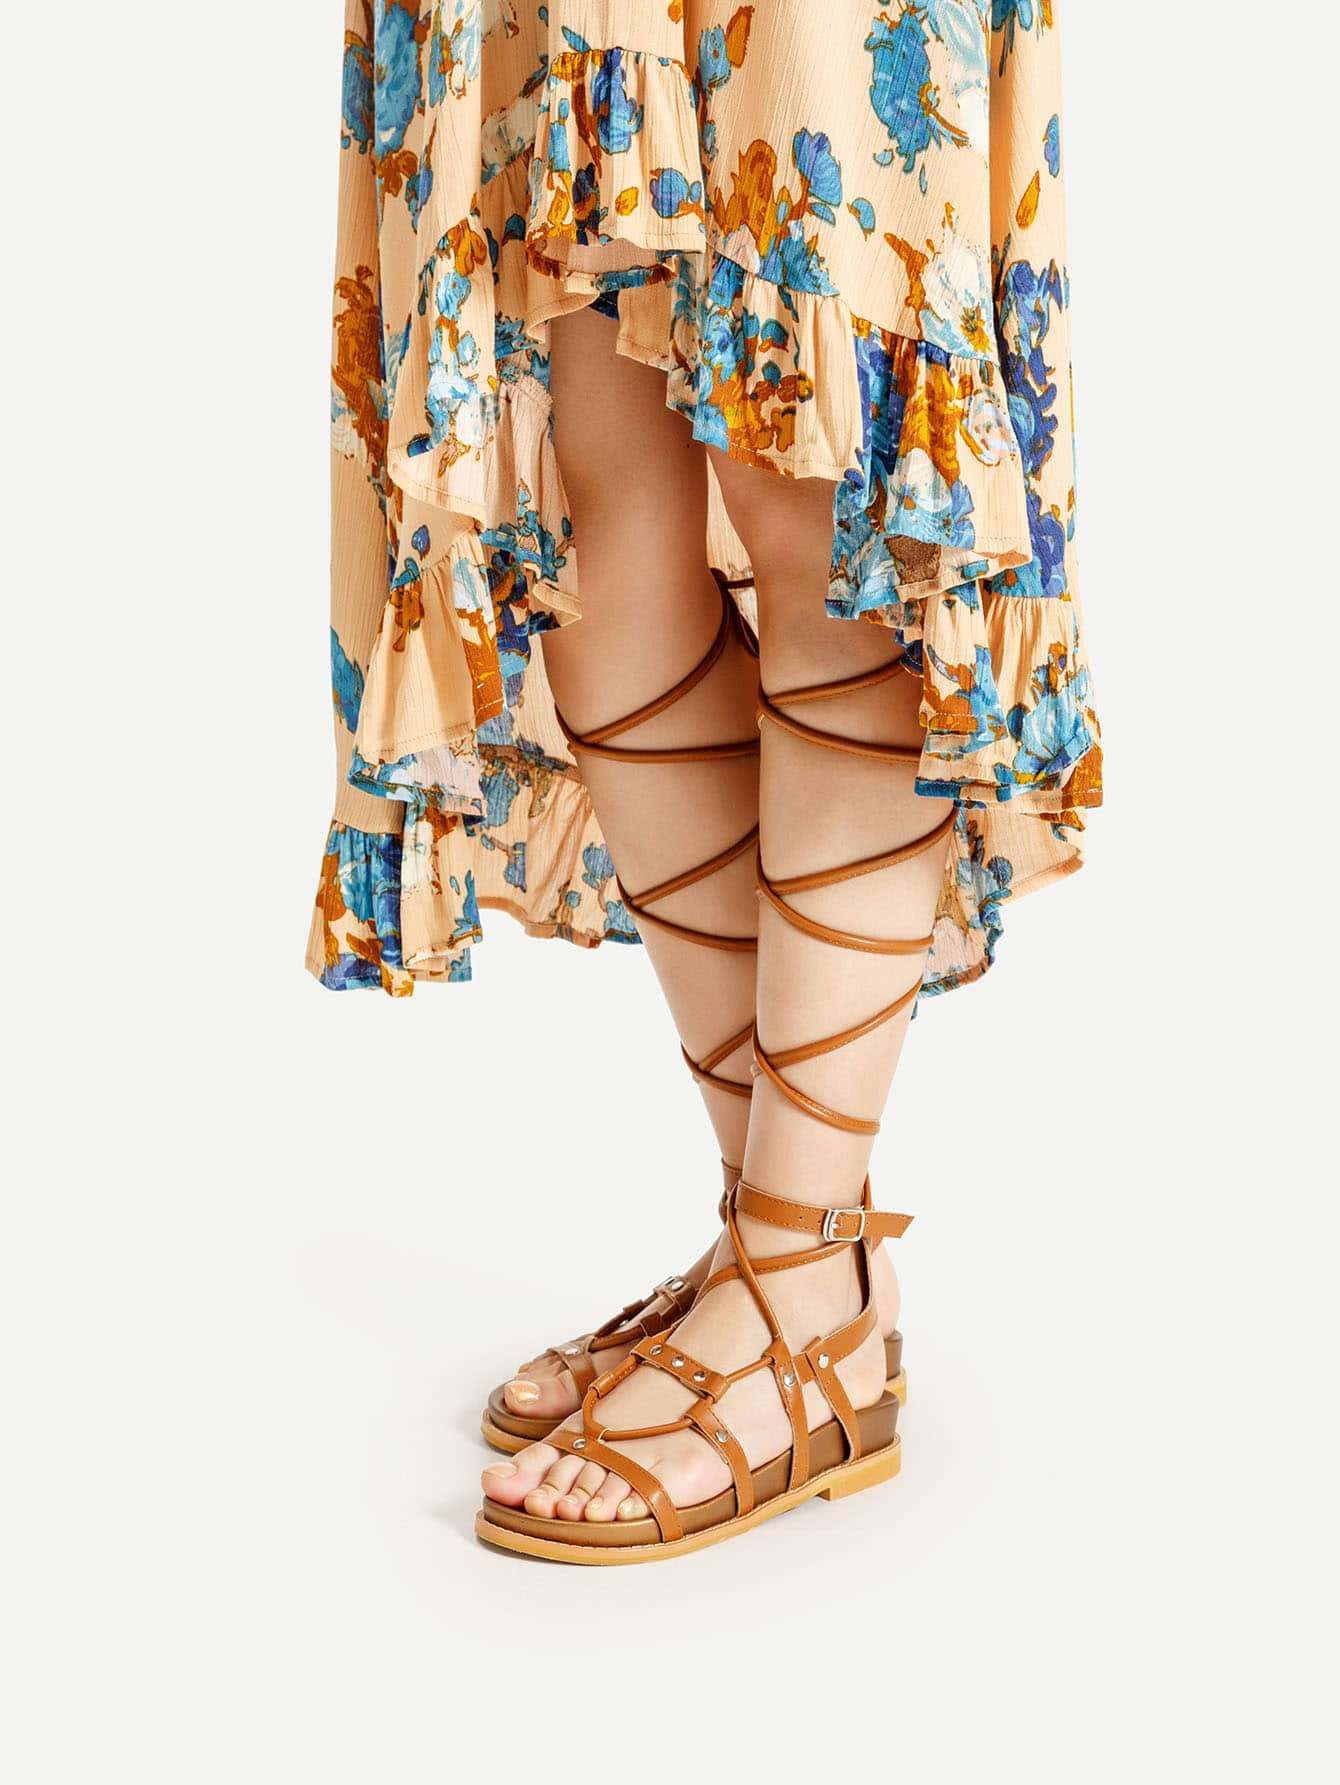 Caged Lace Up Gladiator Sandals shoes170508805